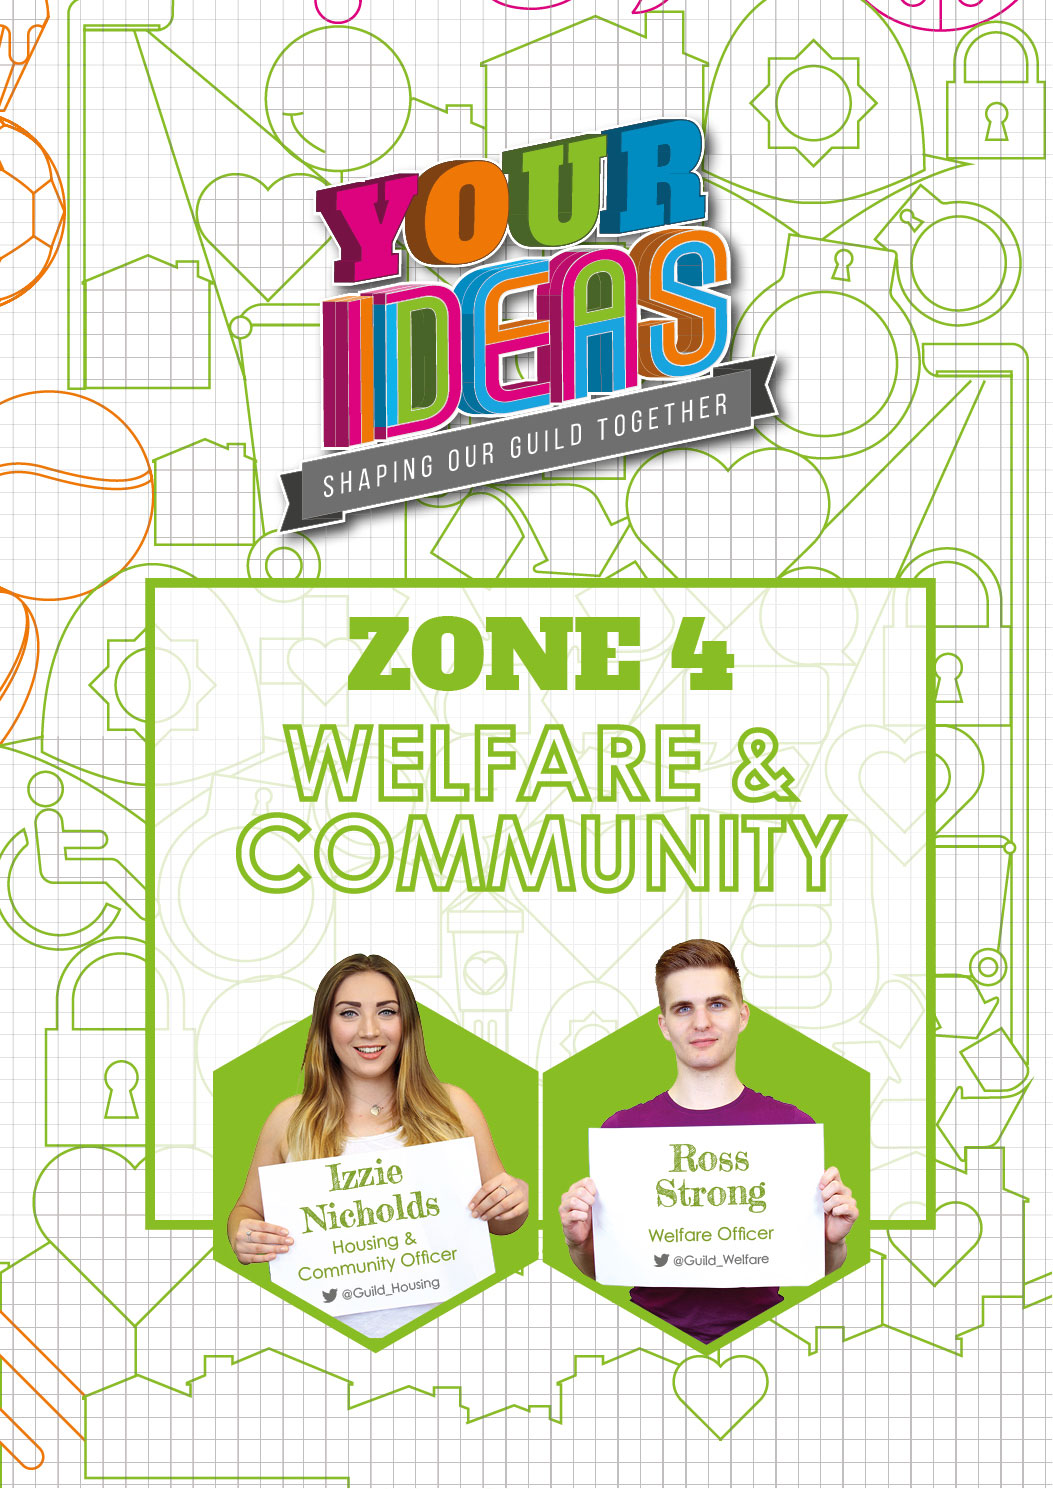 here you can find all of the Ideas related to halls, housing, the local community and student wellbeing. Ross, your Welfare Officer, and Izzie, your Housing & Community Officer, take care of the ideas in this Zone. Get in touch with them to find out more about the Zone and what they're working on. Click here to see what Ideas are currently up for discussion and voting in the Welfare & Community Zone.